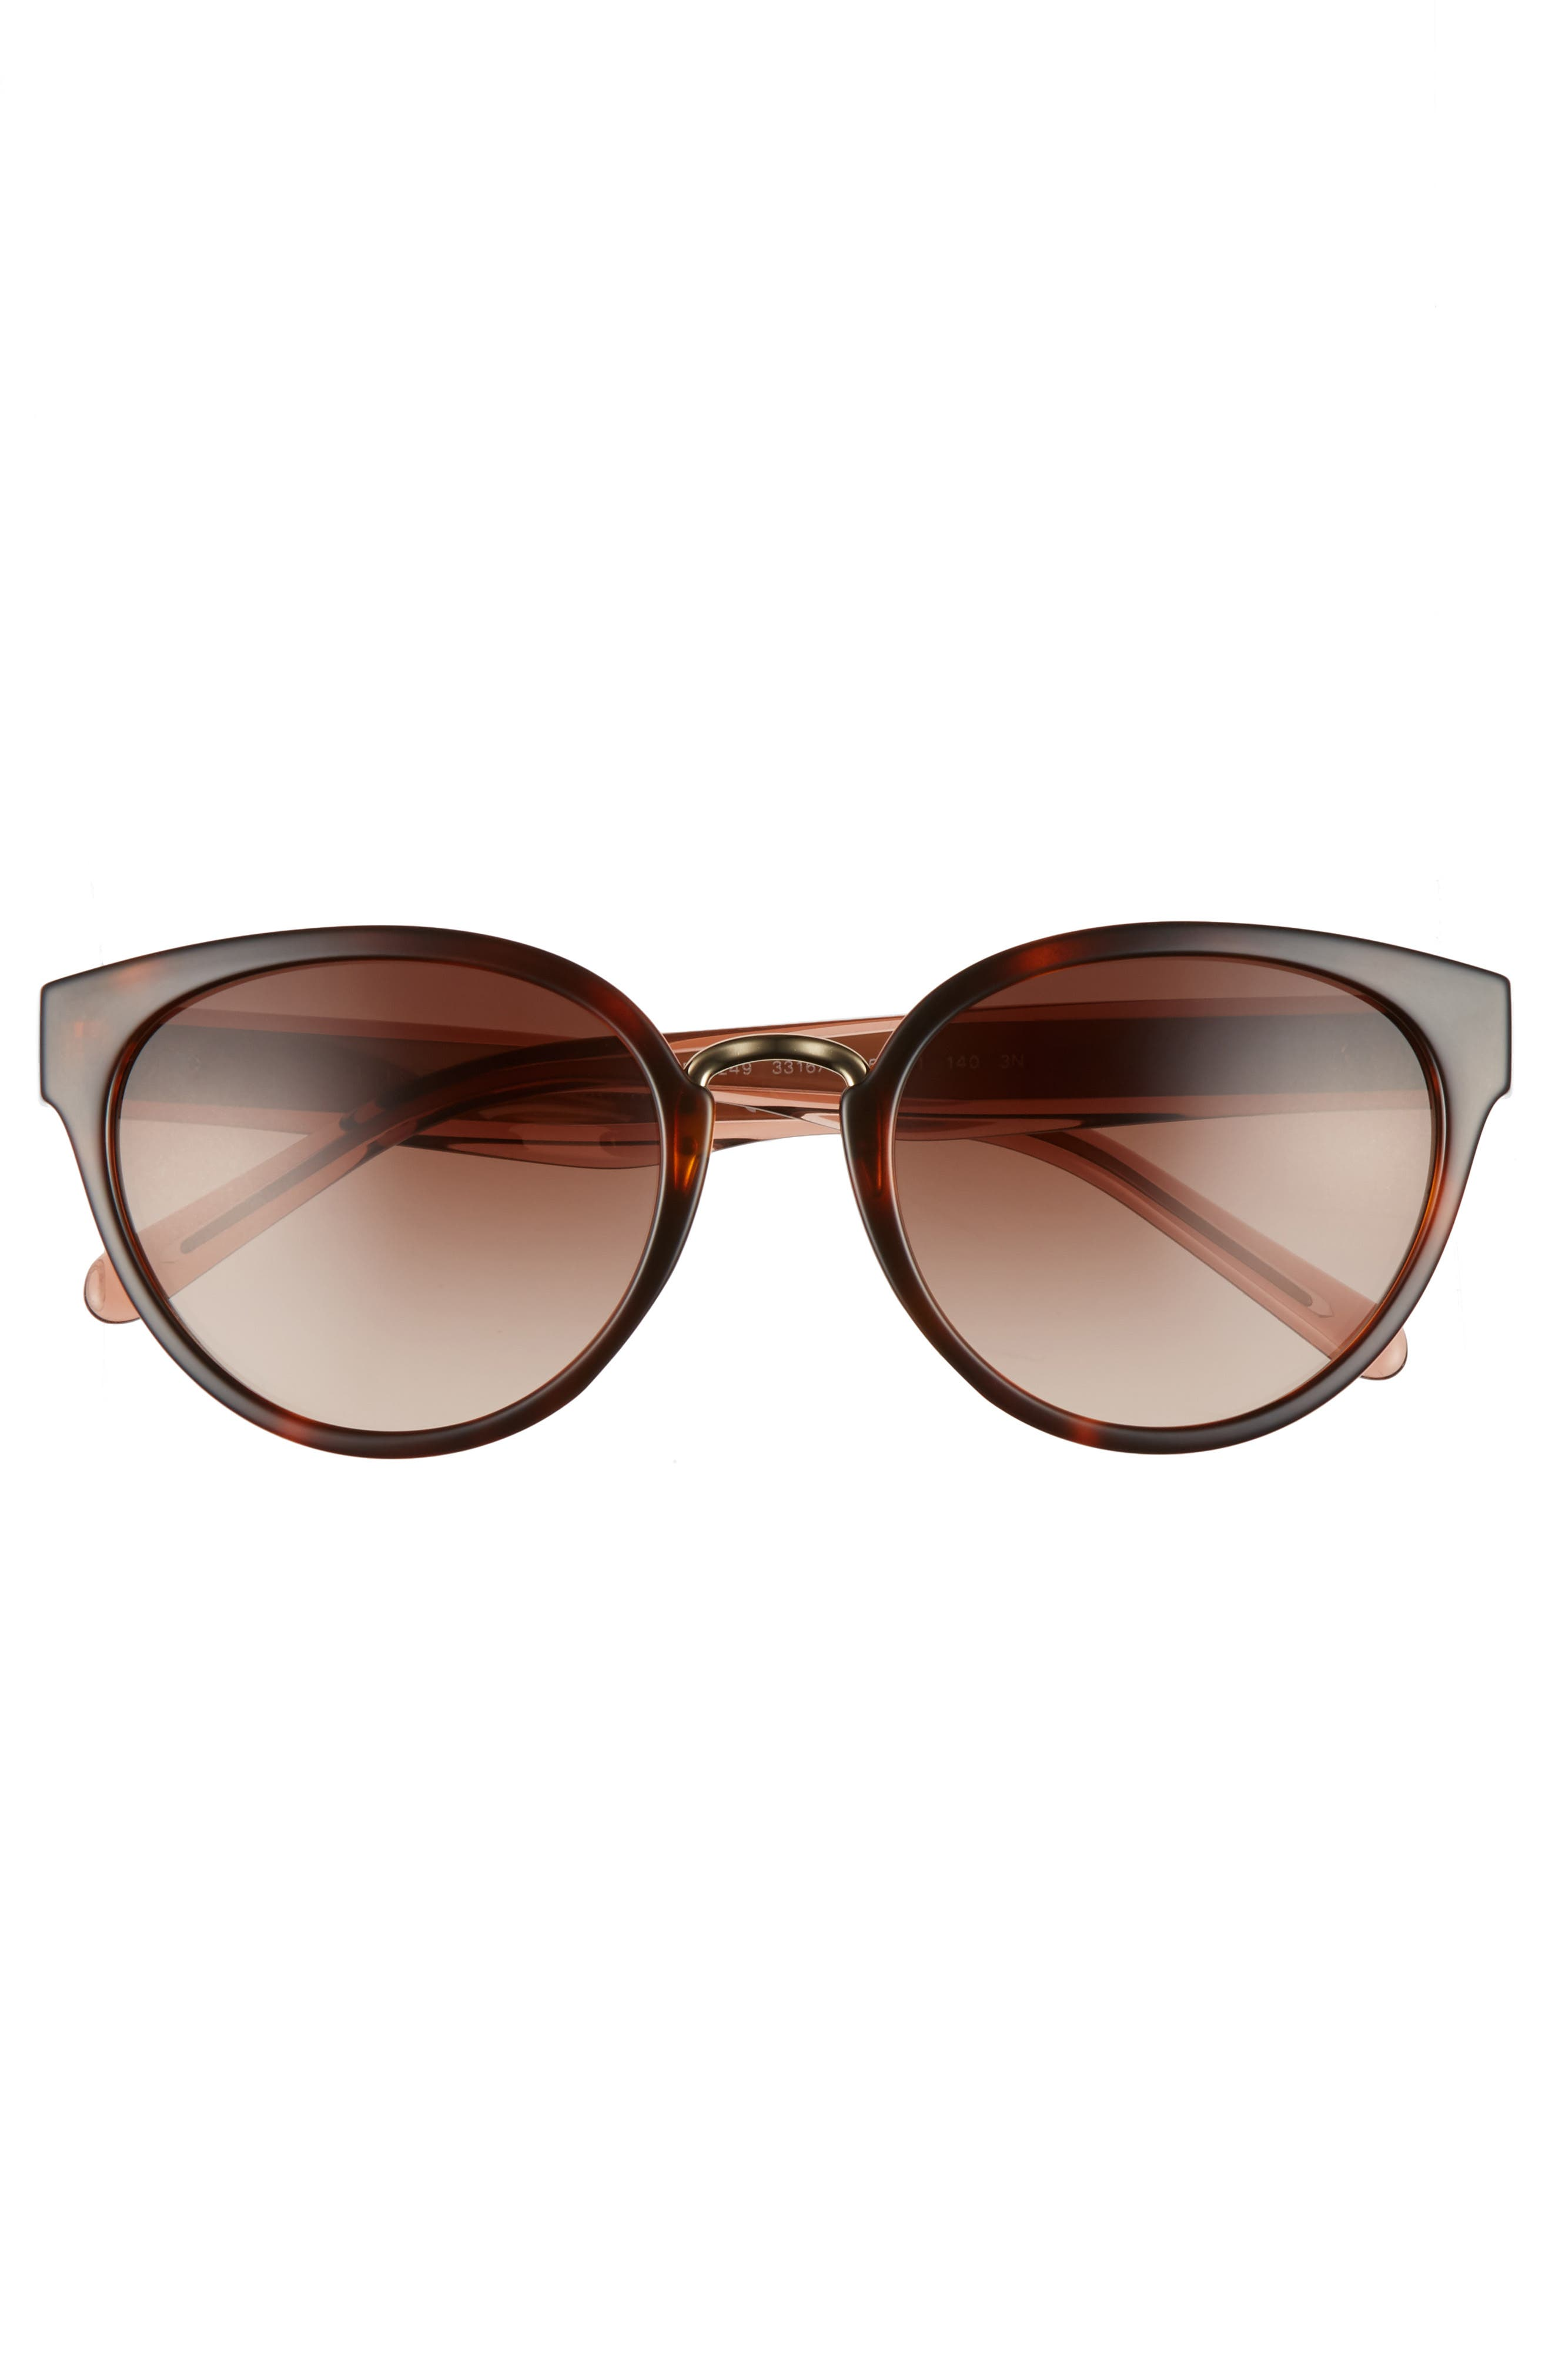 53mm Gradient Cat Eye Sunglasses,                             Alternate thumbnail 3, color,                             Brown Havana